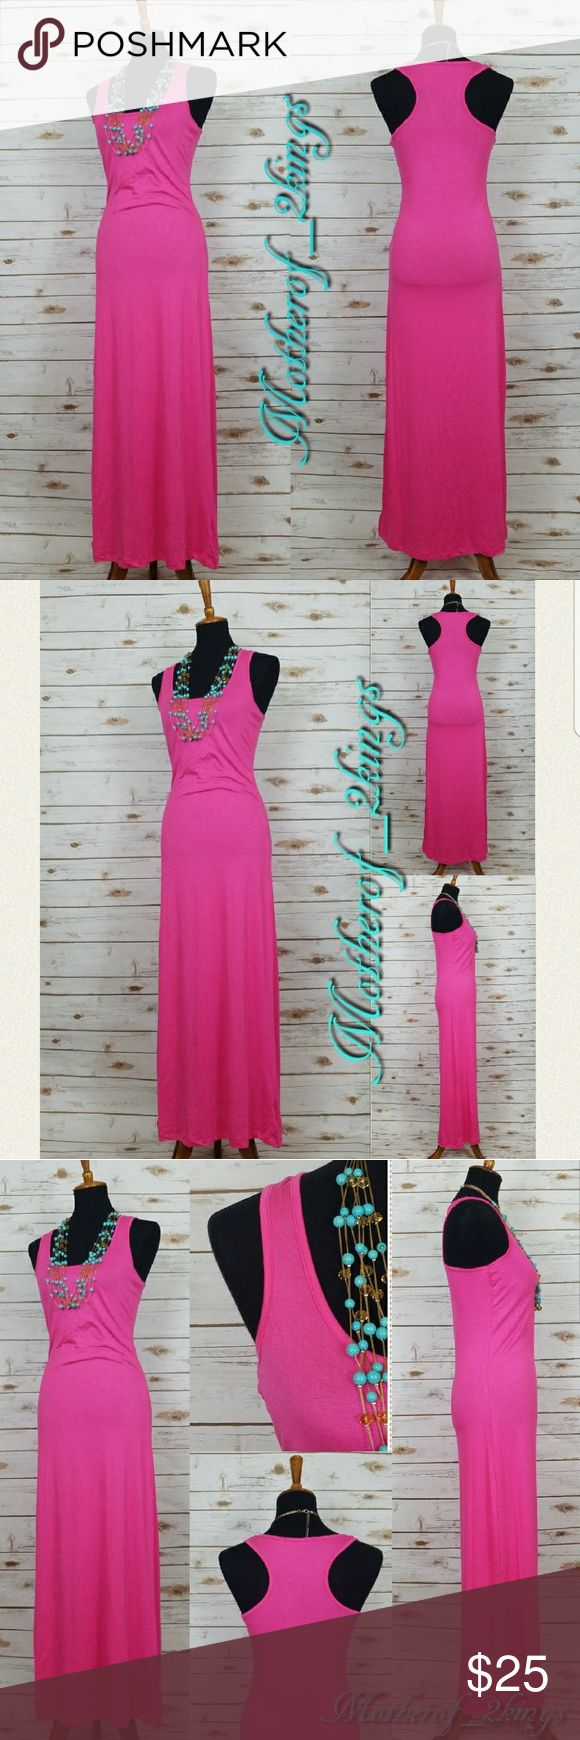 "🎀NEW ARRIVAL🎀 PINK RACERBACK MAXI DRESS PINK RACERBACK MAXI DRESS is SUPER CUTE!!! 😍  PERFECT for Summer. Dress it up or down!   👗 95% Rayon; 5% Spandex  Length:  52"" Dresses Maxi"